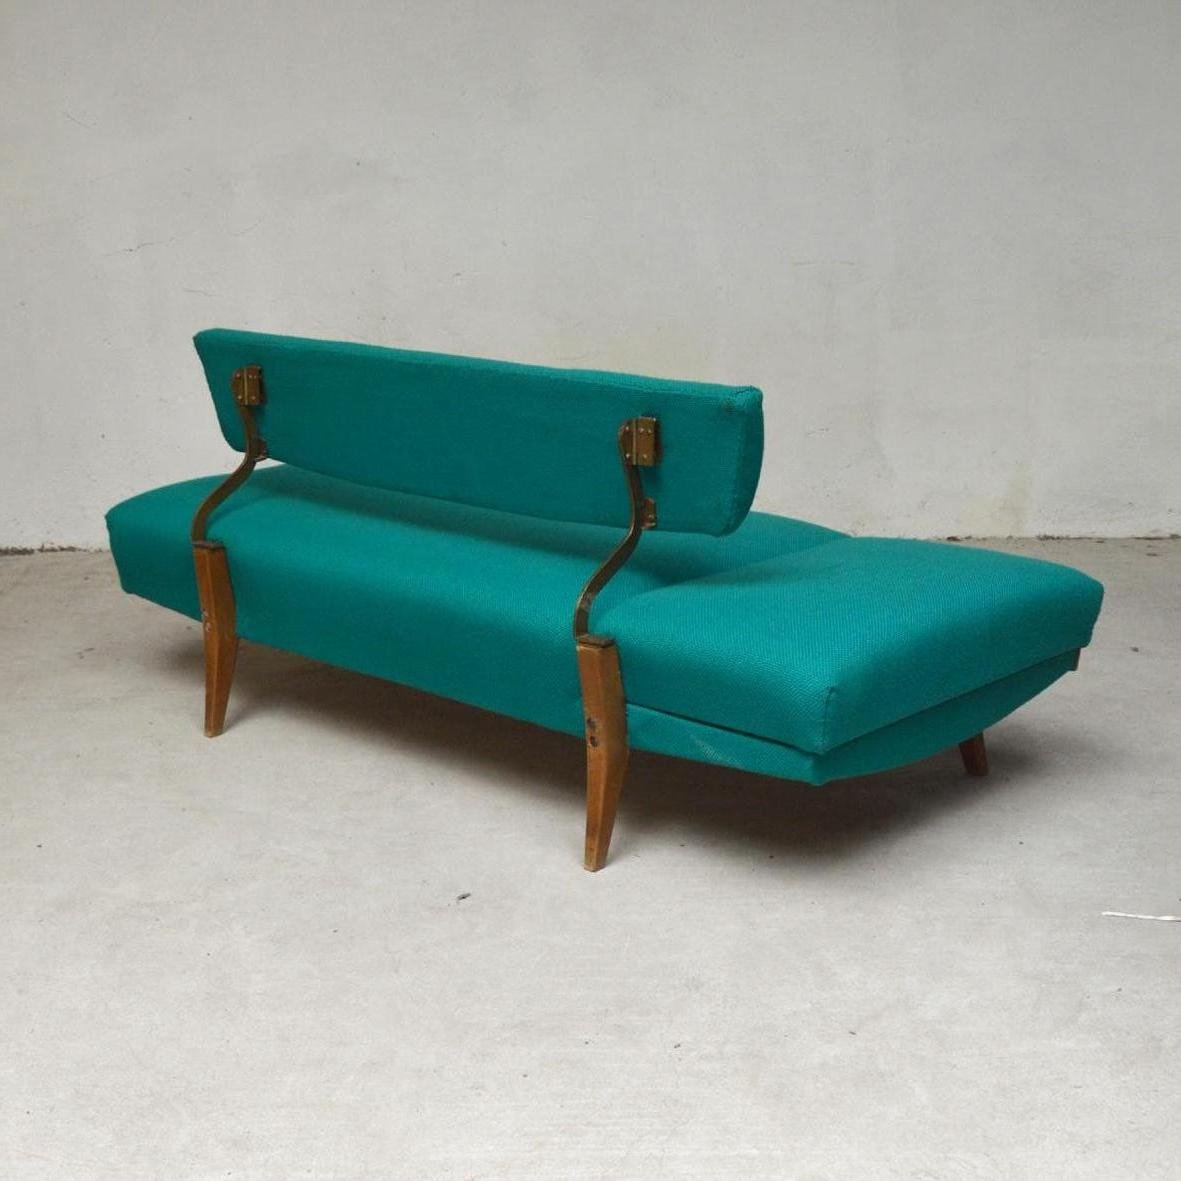 Turquoise Canape Daybed Or Sofa 1960s For Sale At Pamono